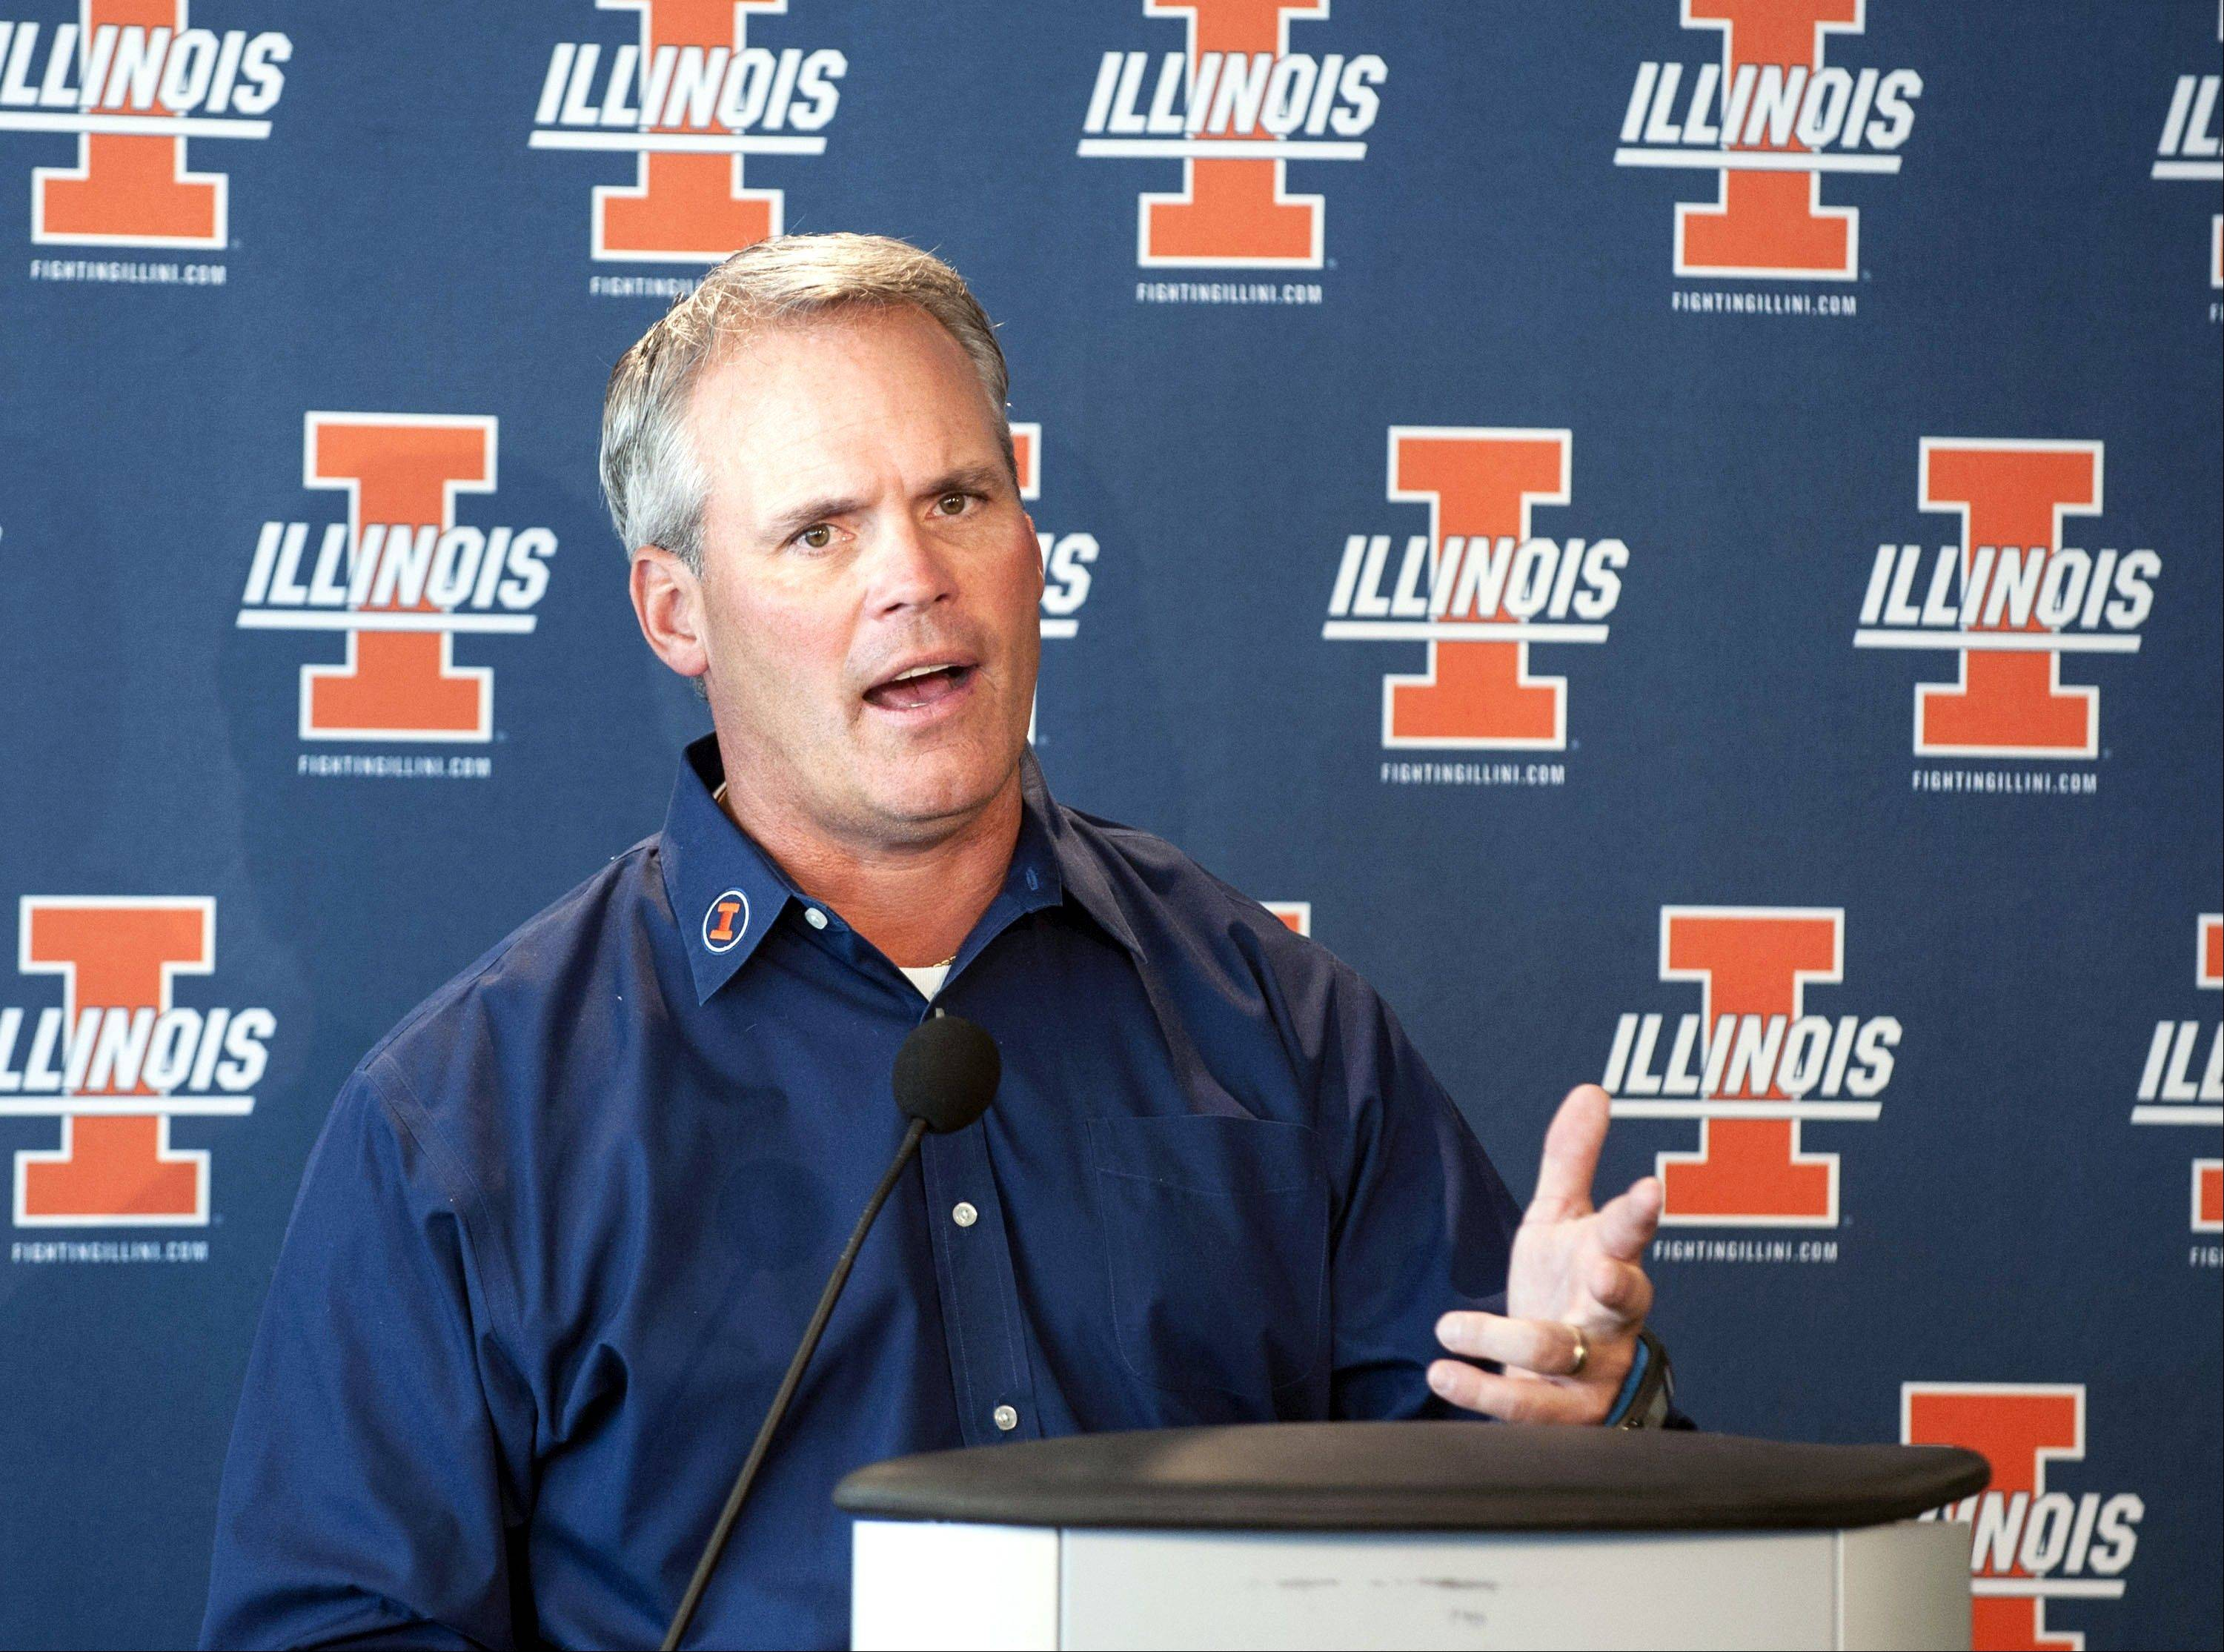 Illinois football coach Tim Beckman addresses the media at his first news conference of the season Monday at Memorial Stadium in Champaign. The Illini will host SIU on Saturday in the season opener.